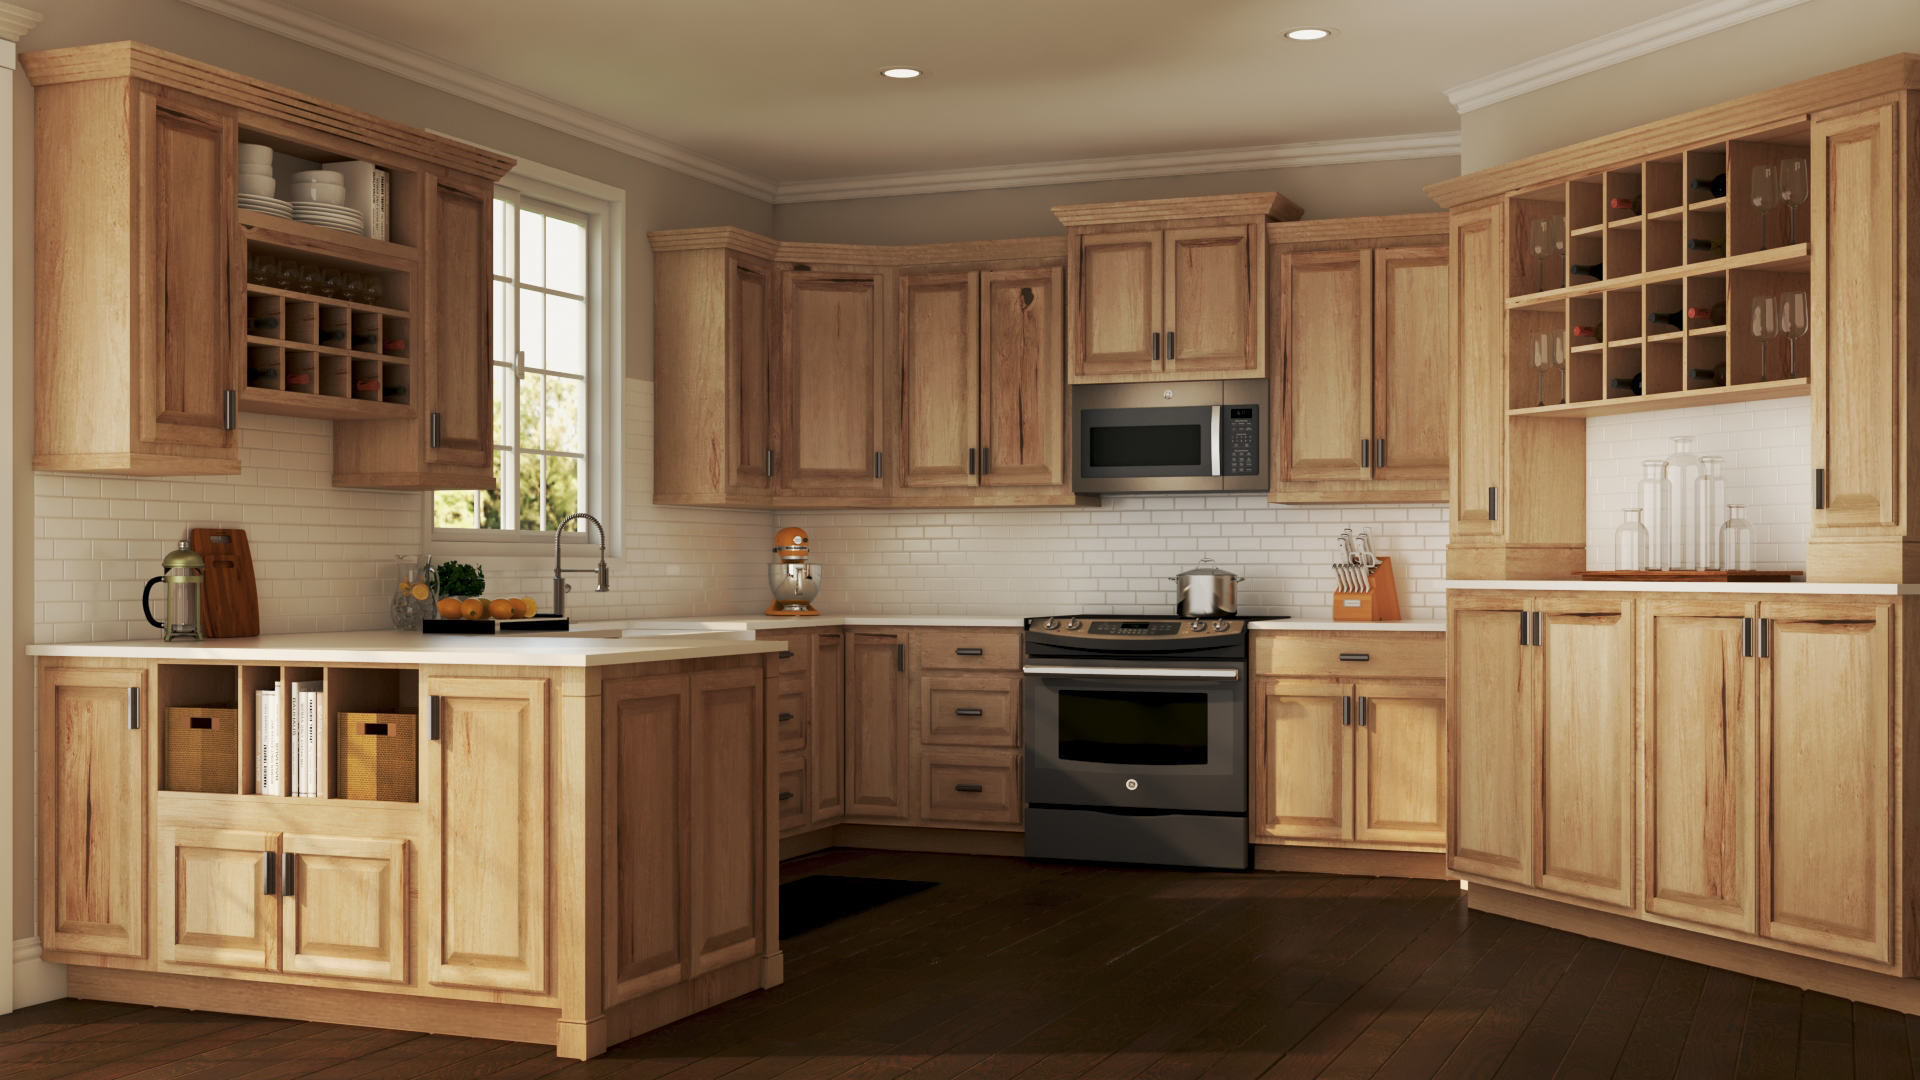 hickory kitchen cabinets rubbermaid storage containers hampton bath in natural  the